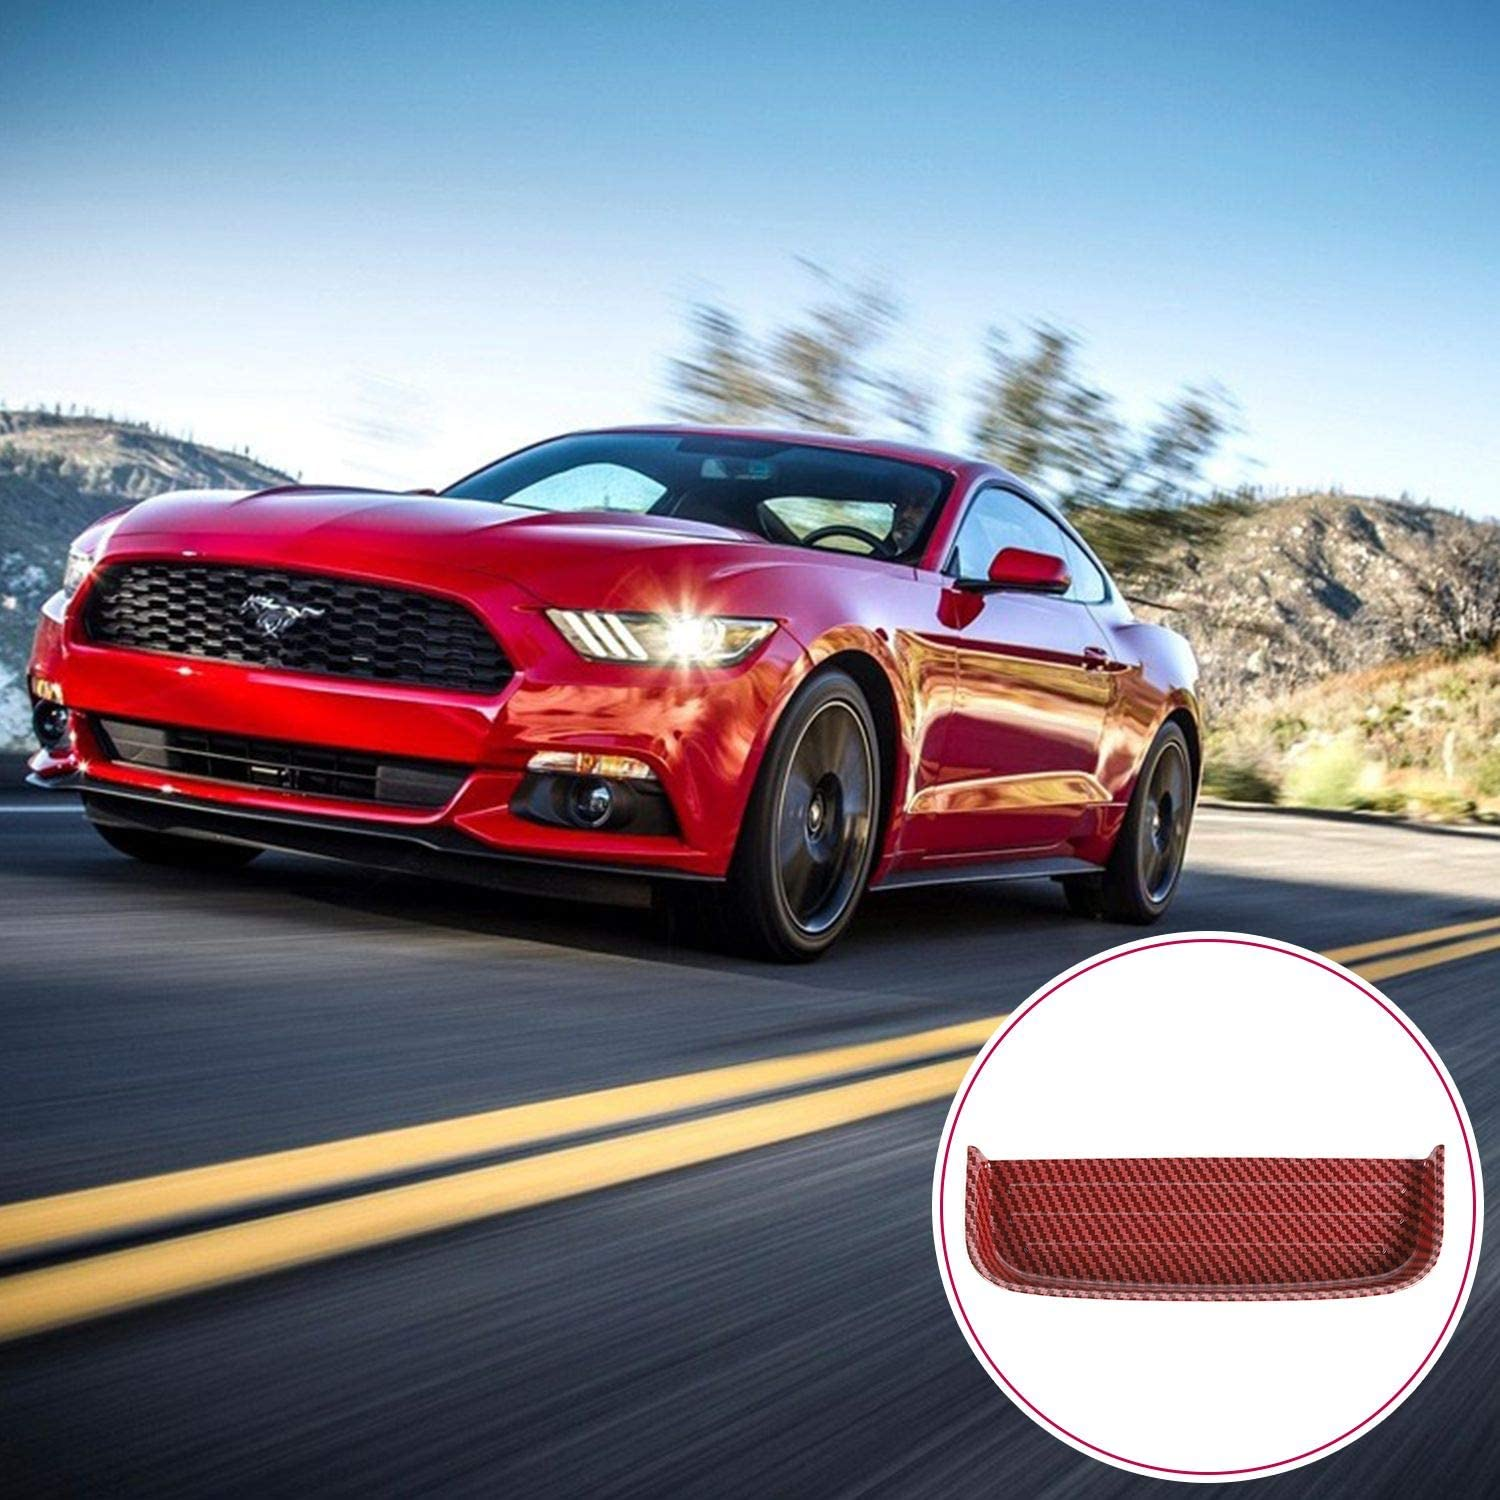 JeCar Front Gear Shift Storage Box Coin Tray for Ford Mustang 2015-2019 Red Carbon Fiber